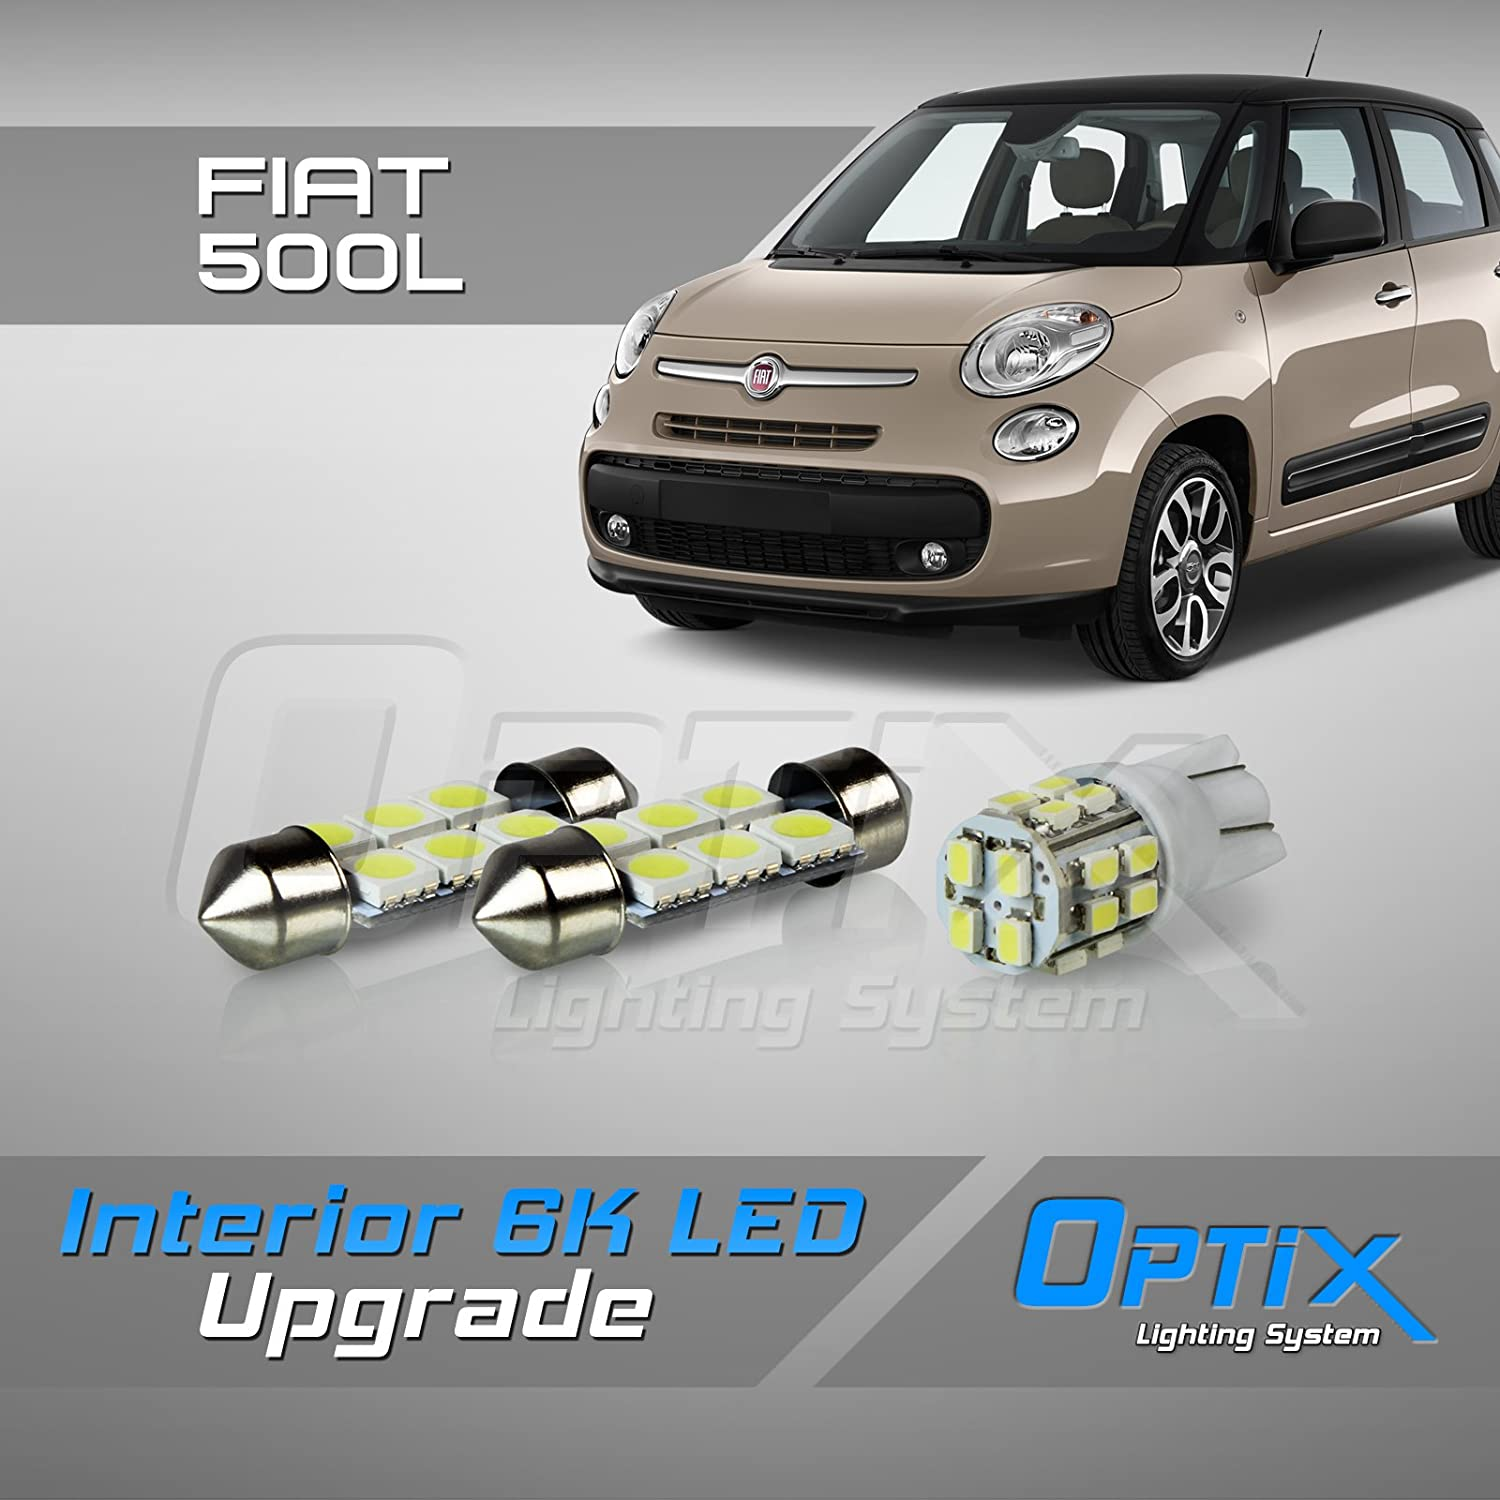 Optix 3pc 2014+ Compatible with Fiat 500L LED Interior Light Package Replacement Set - White